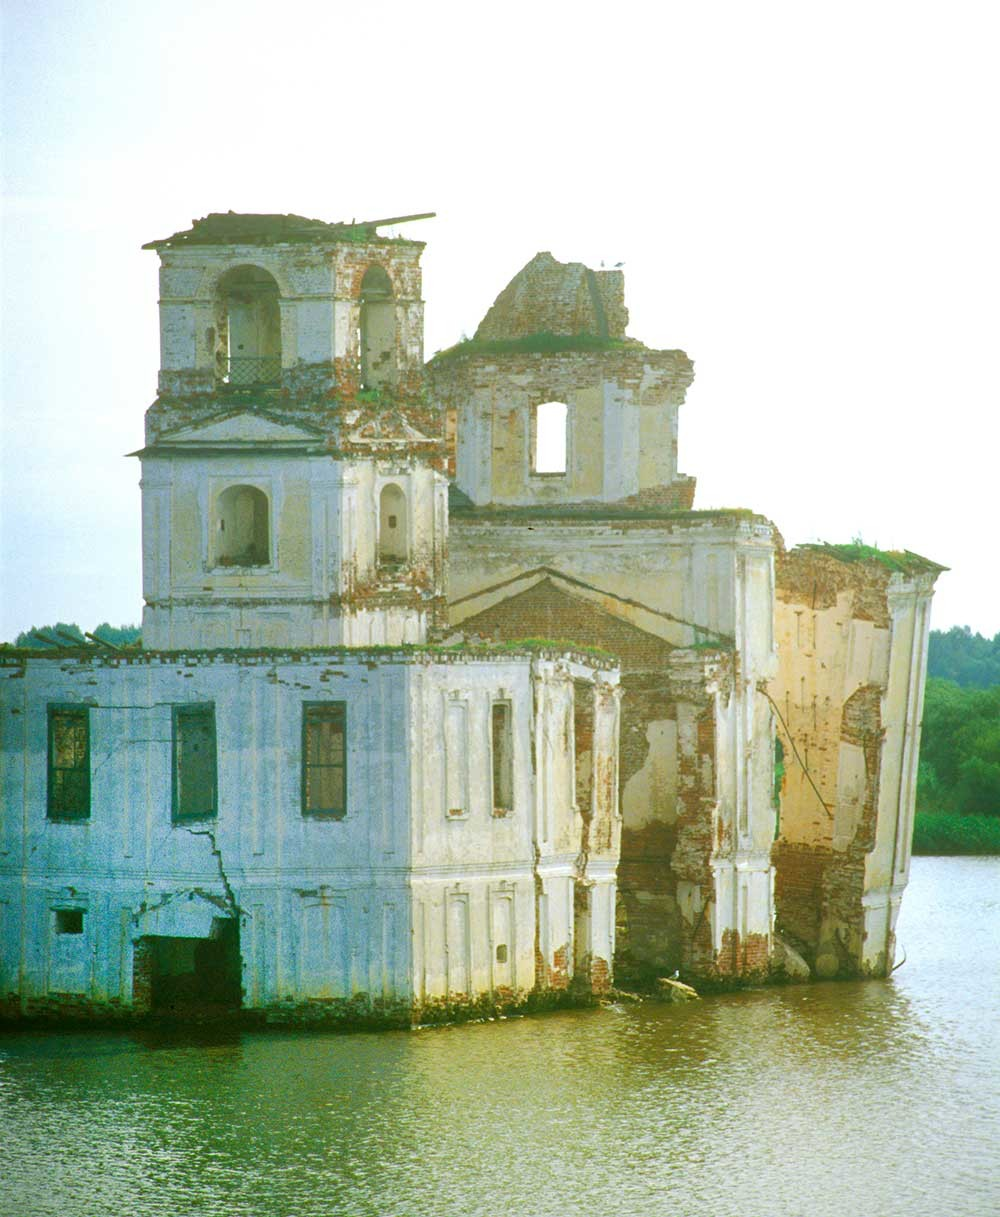 Krokhino. Church of the Nativity of Christ, southwest view from Sheksna River. July 14, 2007.